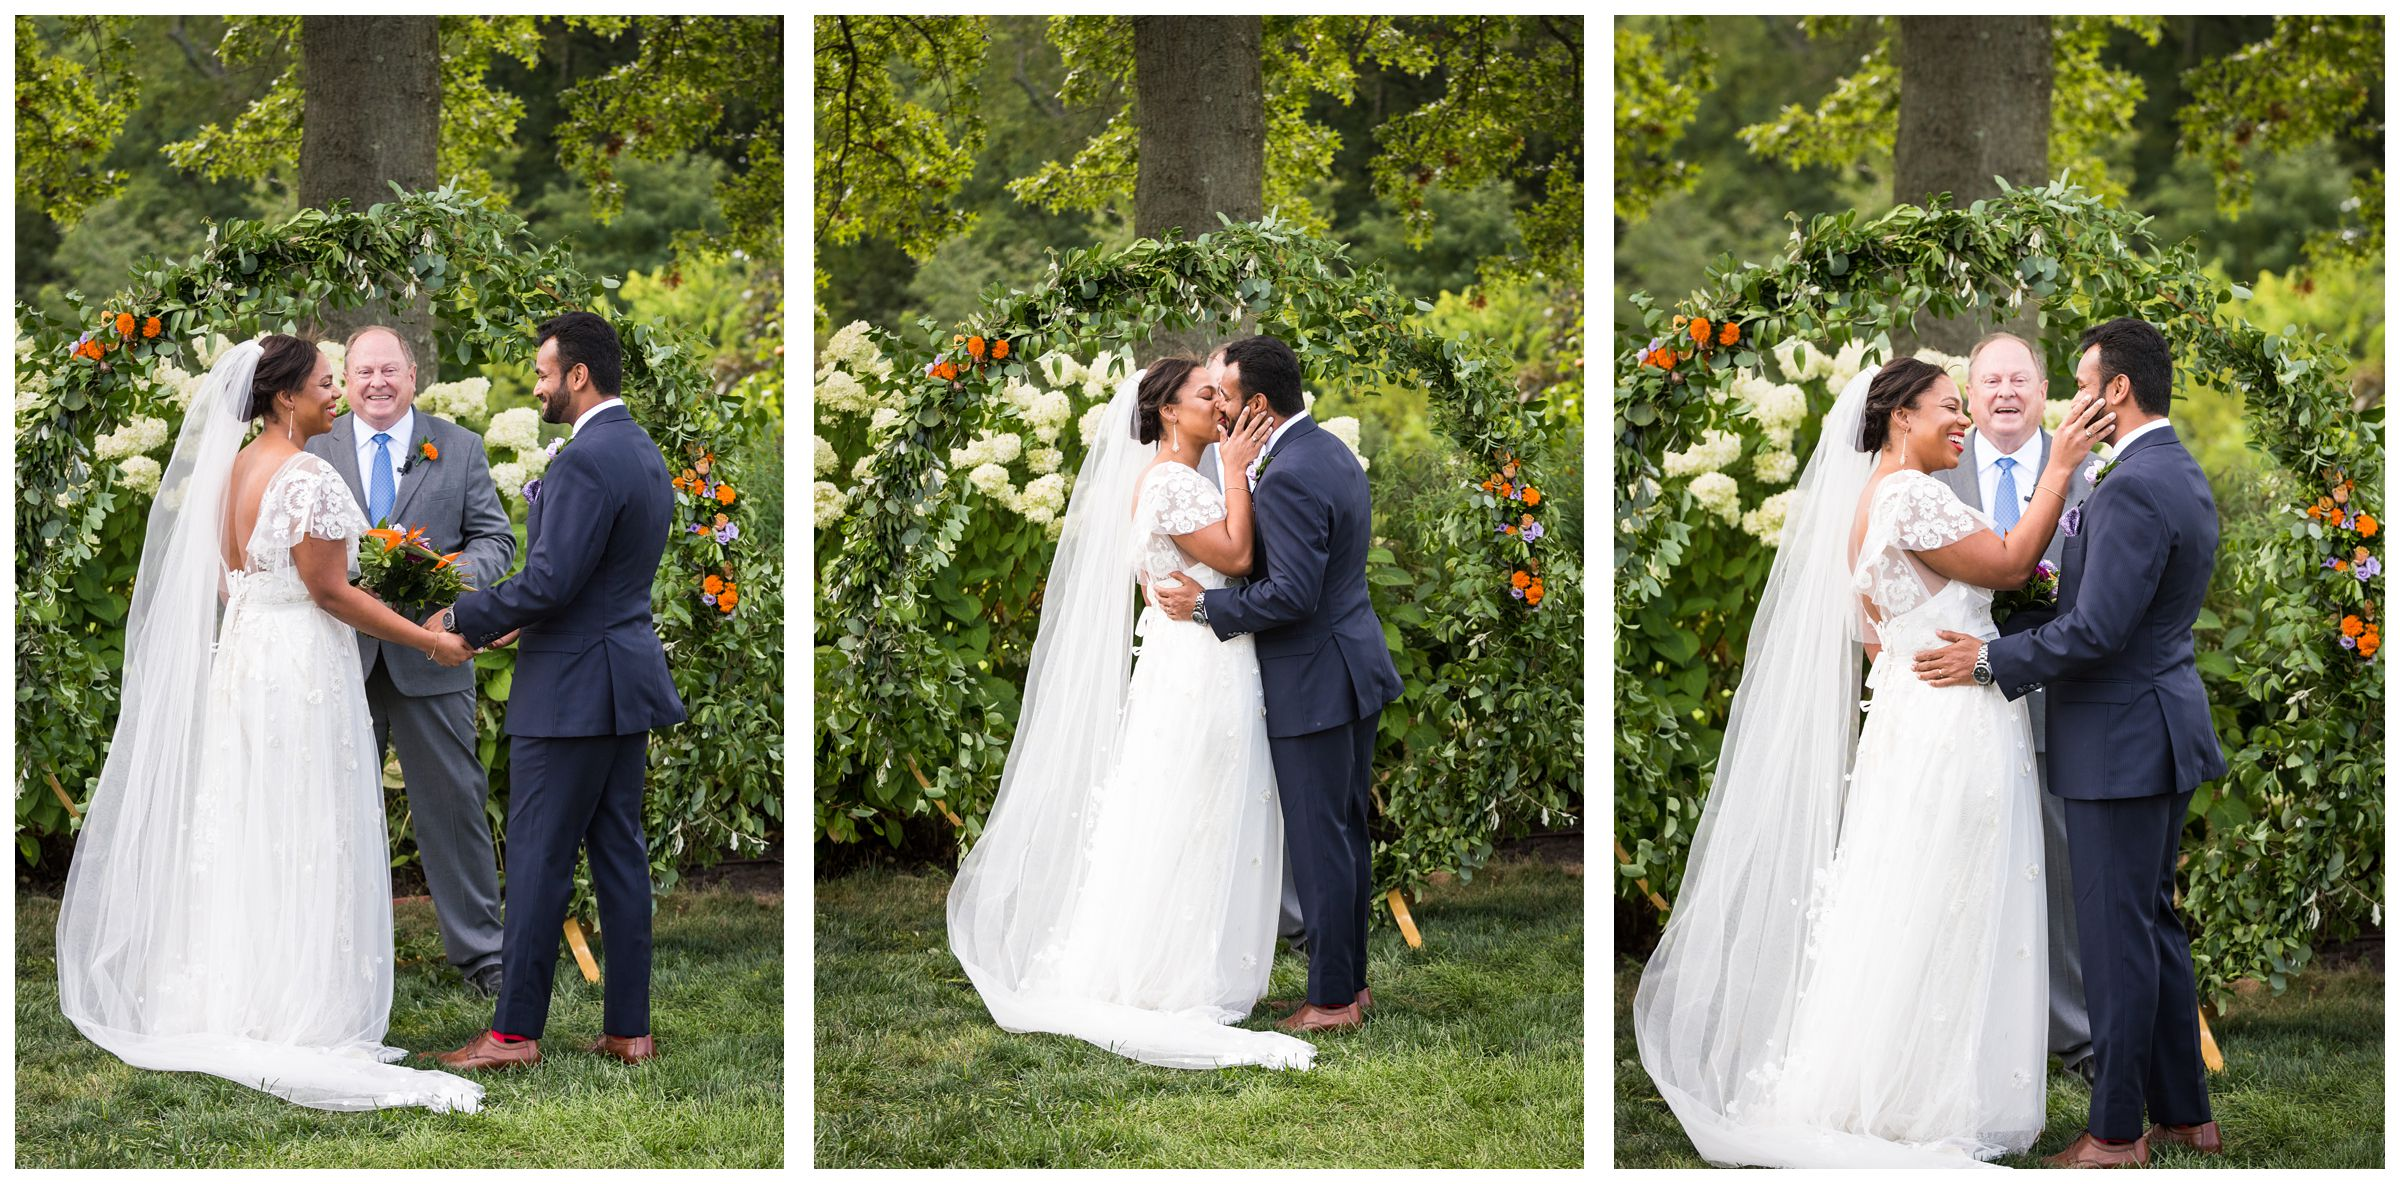 wedding ceremony first kiss in front of floral moongate arch during rustic wedding at Jorgensen Farms Historic Barn